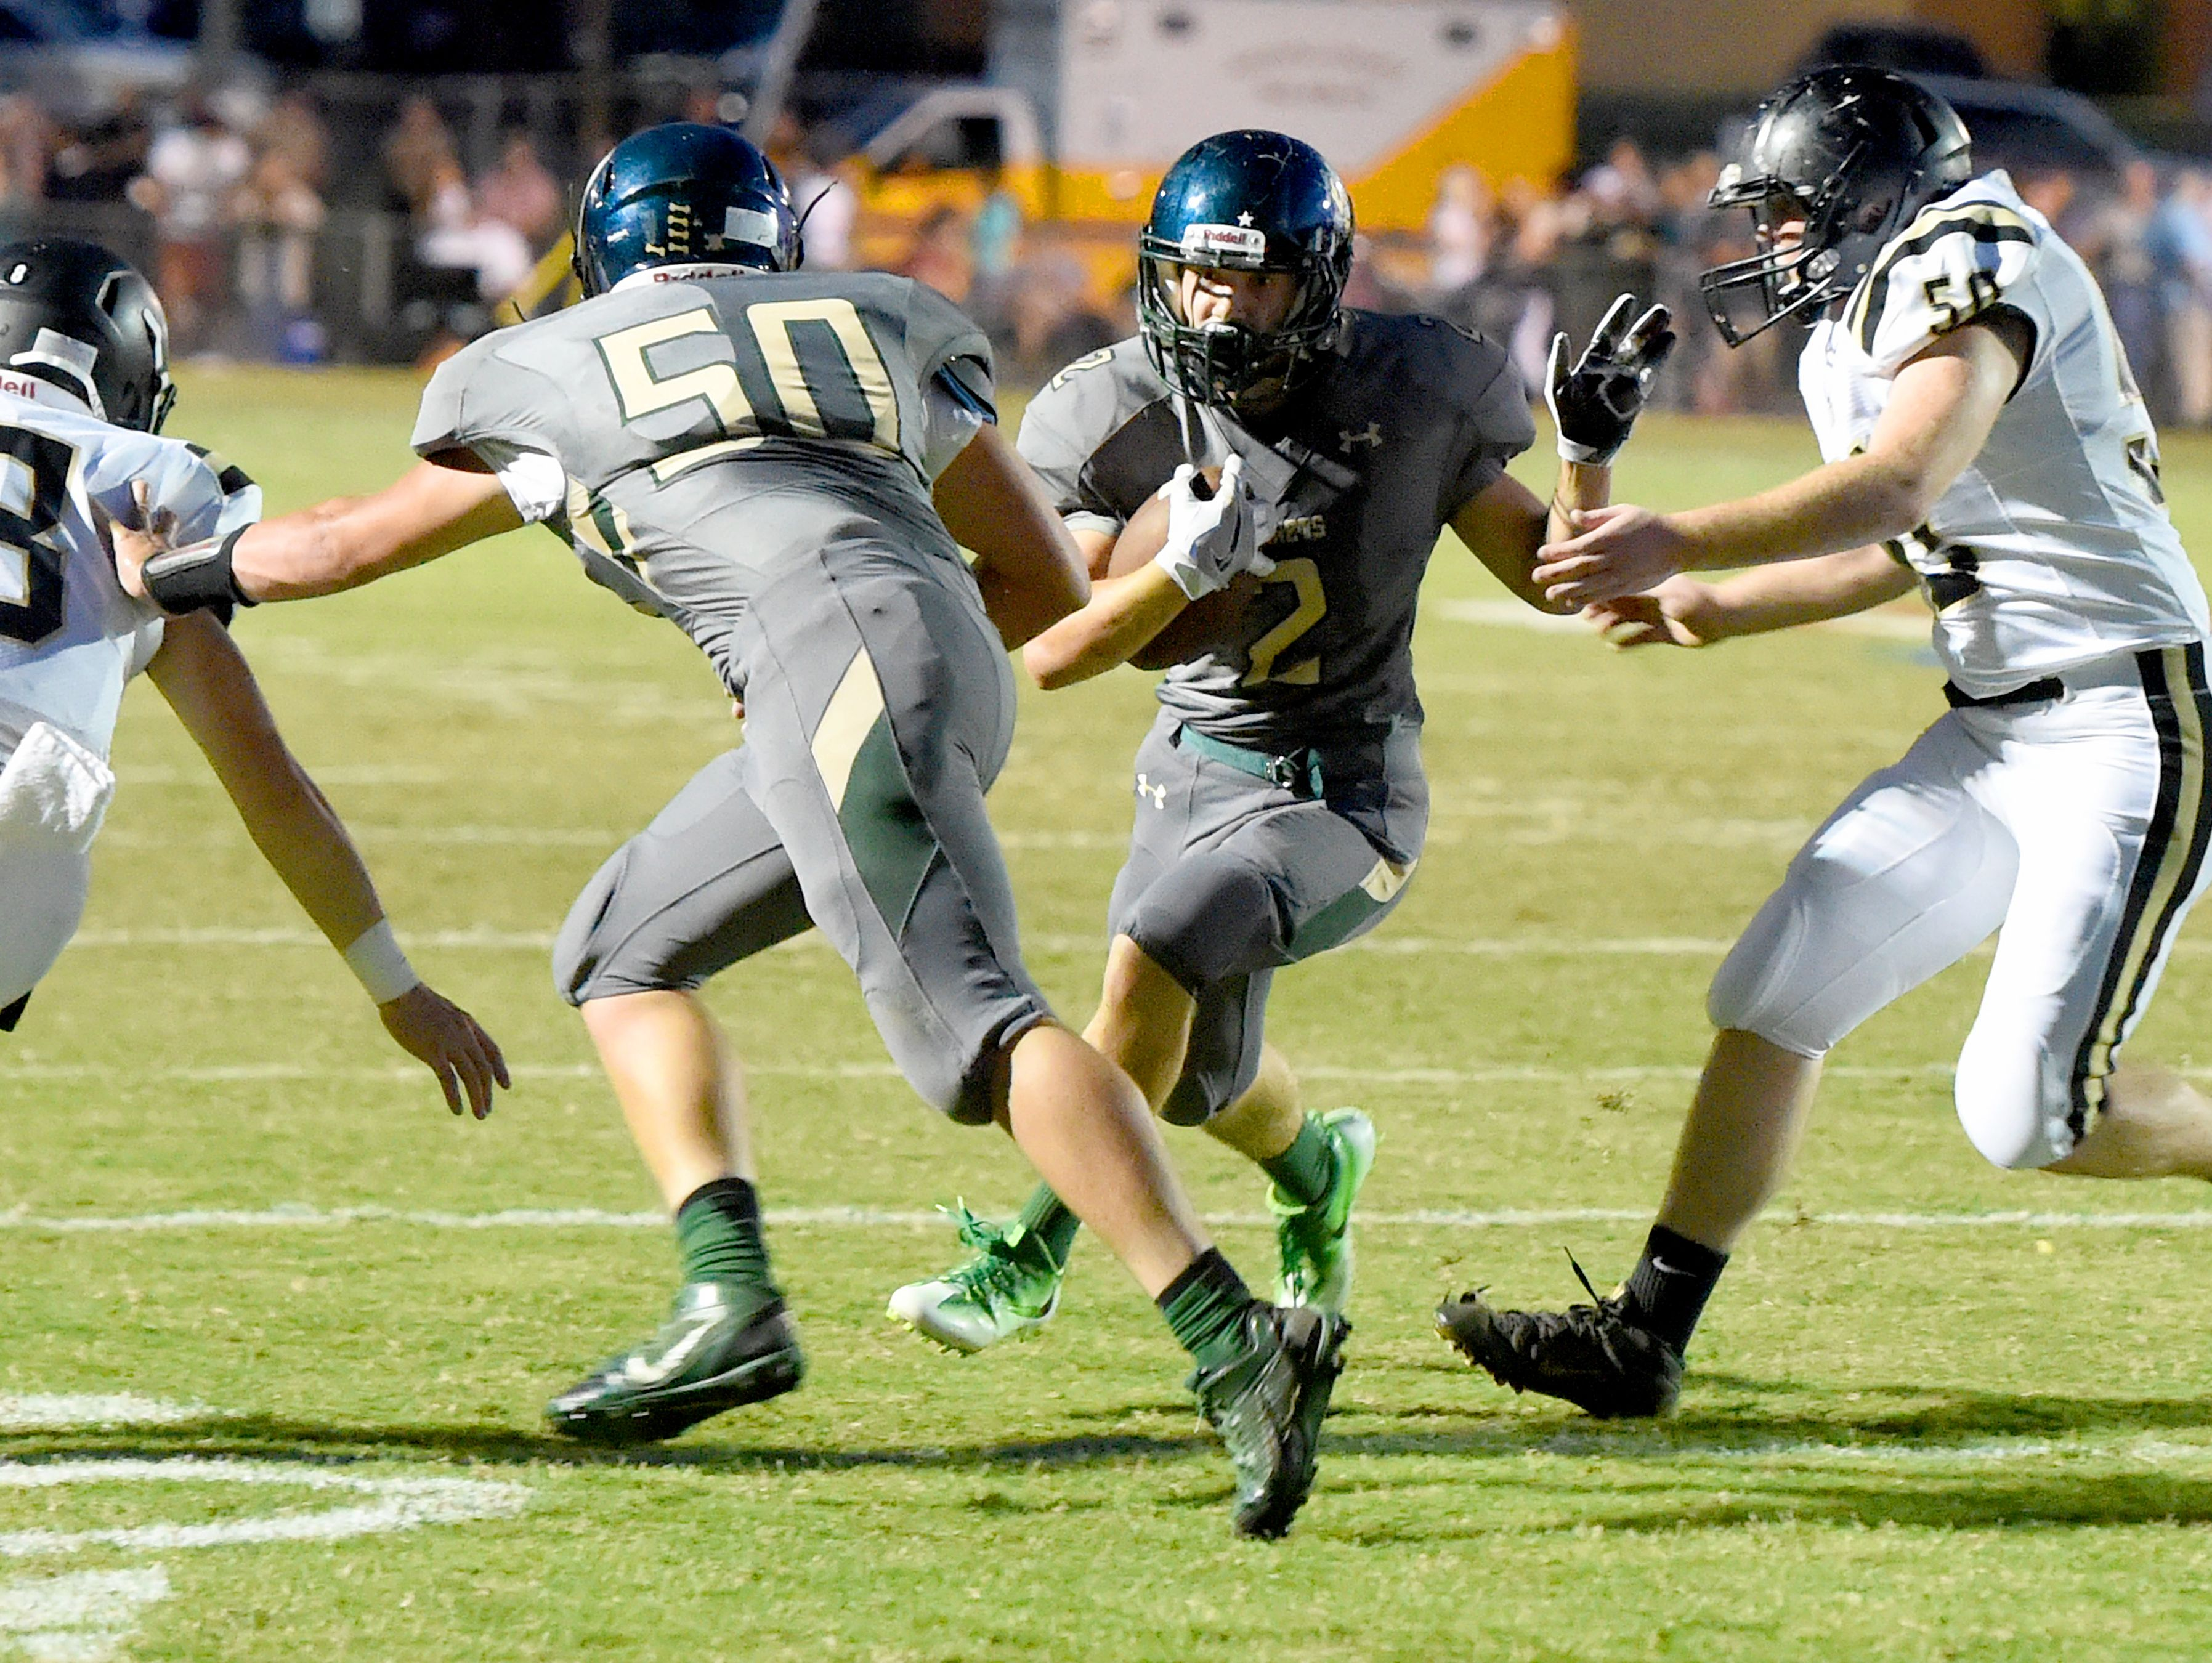 Wilson Memorial's Colton Tyree moves the ball as Buffalo Gap's Walker Hostetter closes in for the tackle during a football game played in Fishersville on Friday, Sept. 23, 2016.